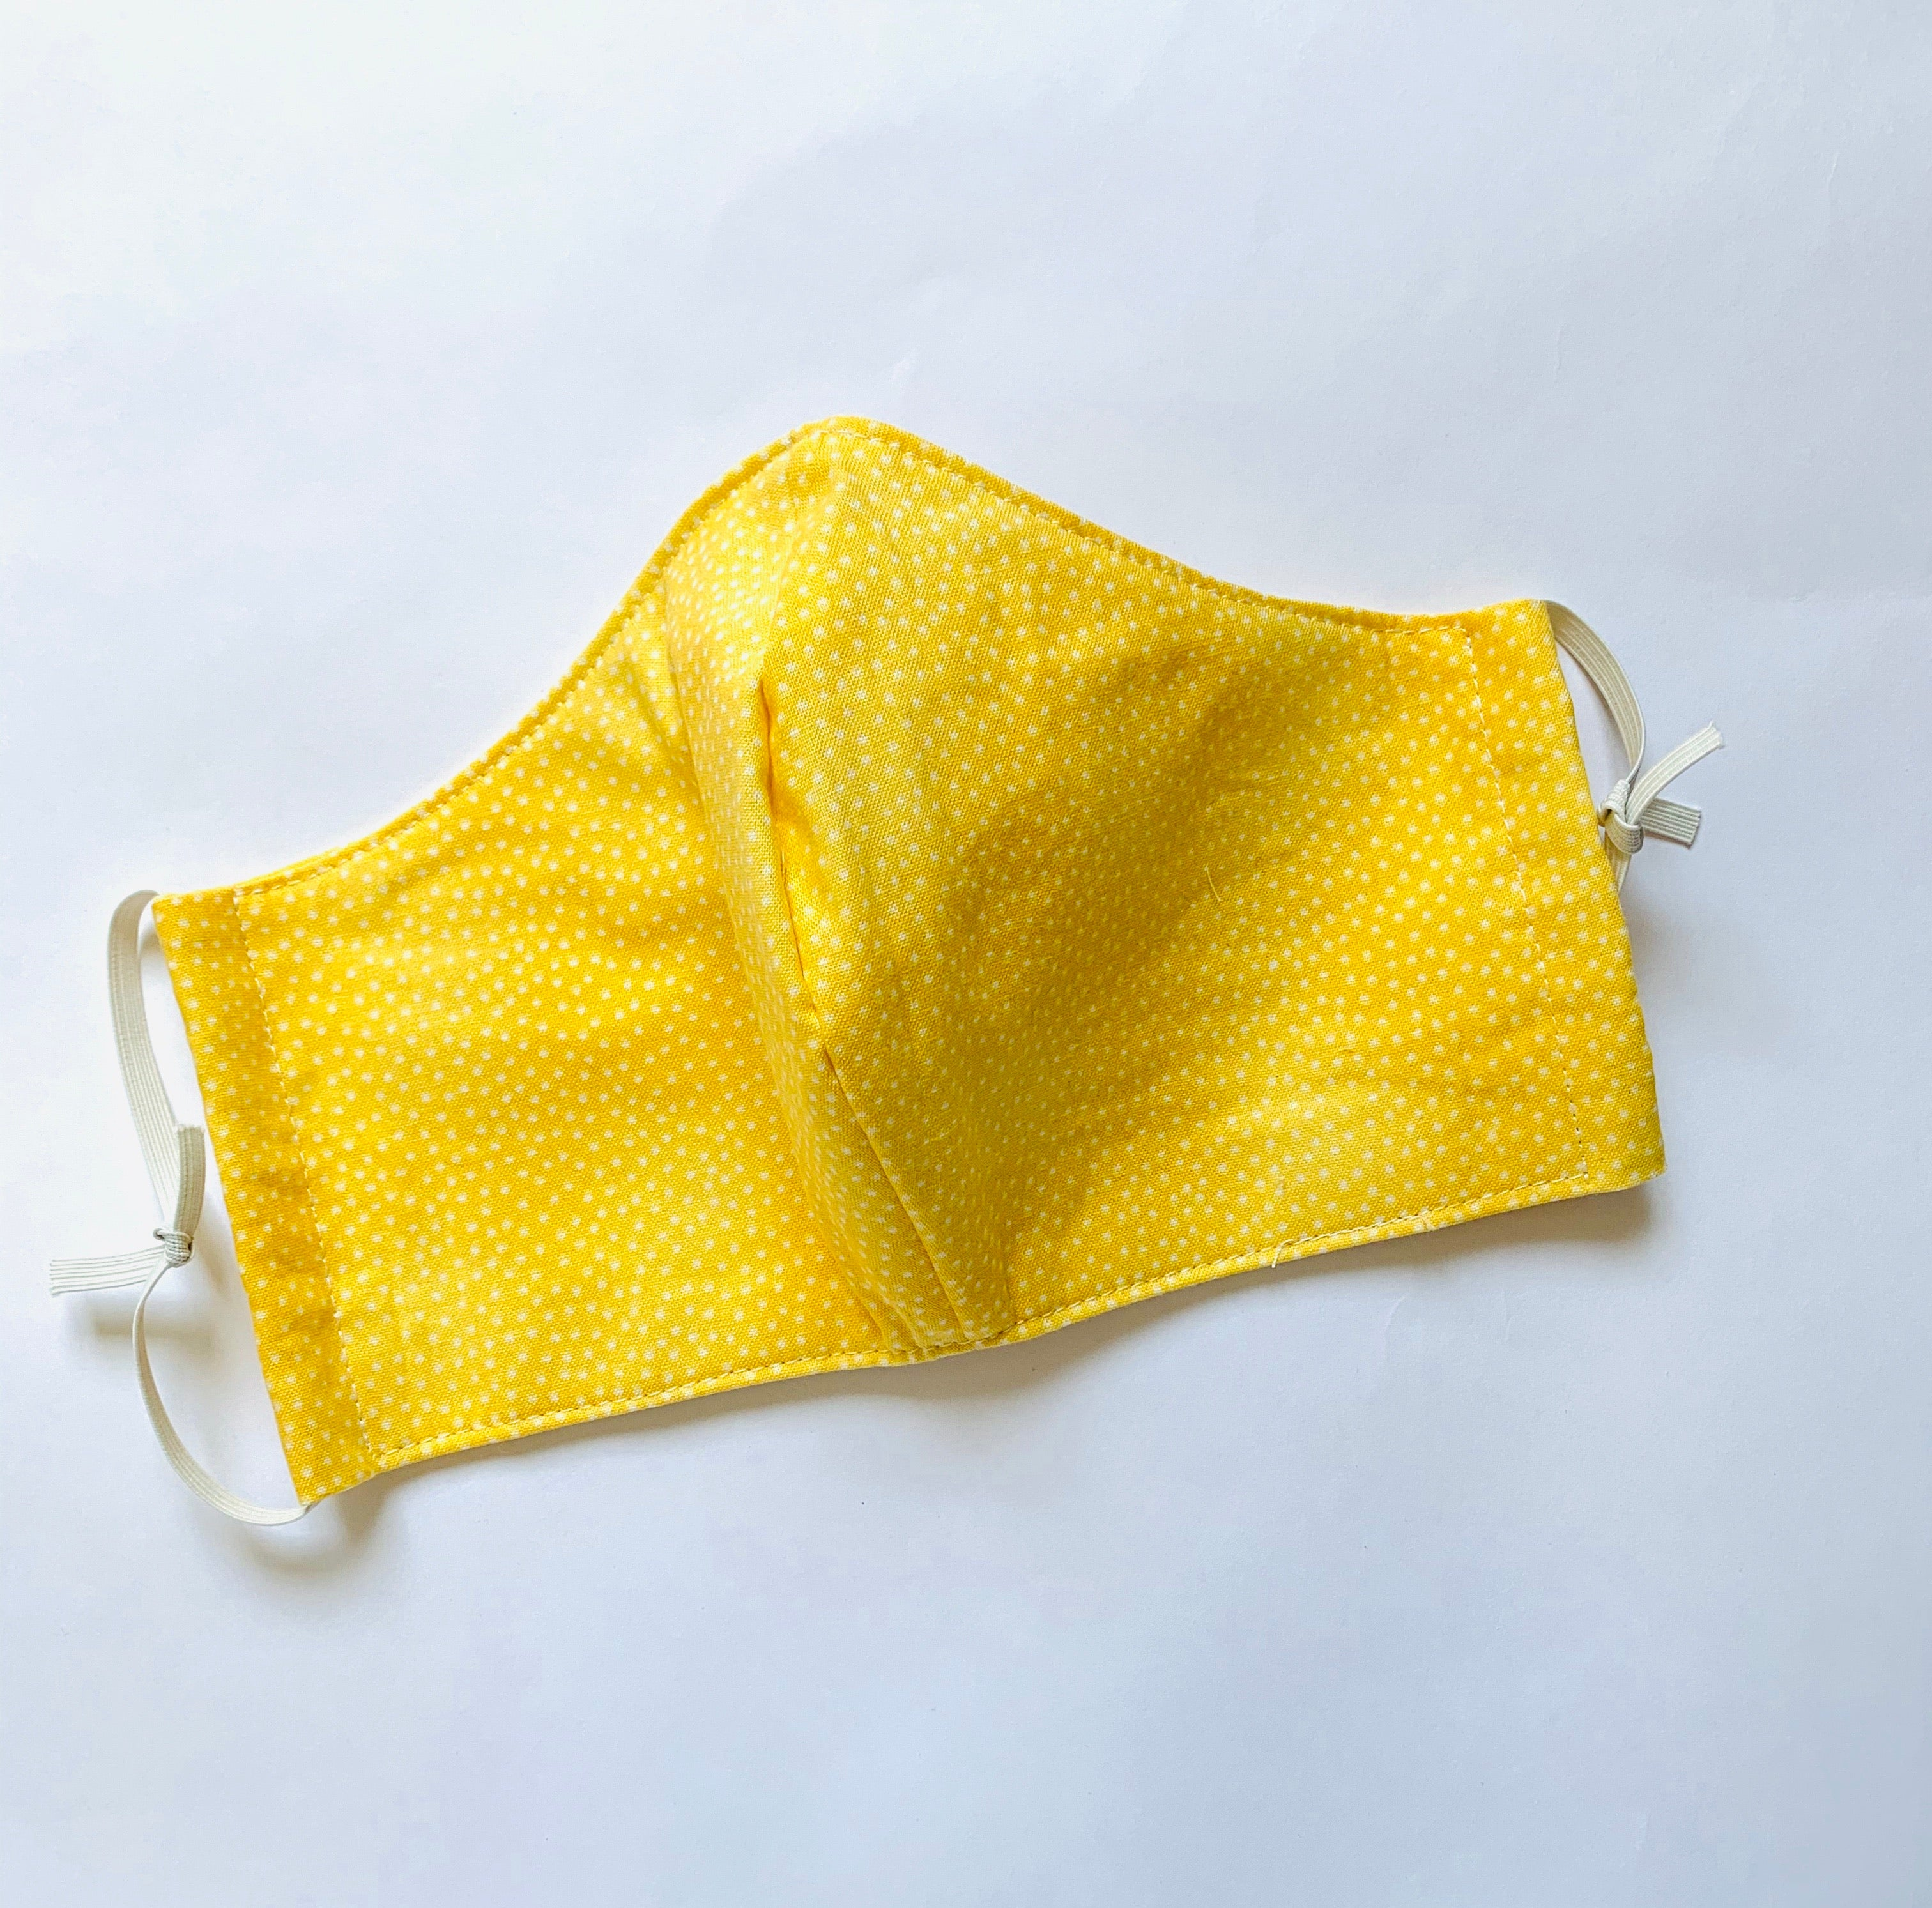 Yellow mask with filter pocket - adult only